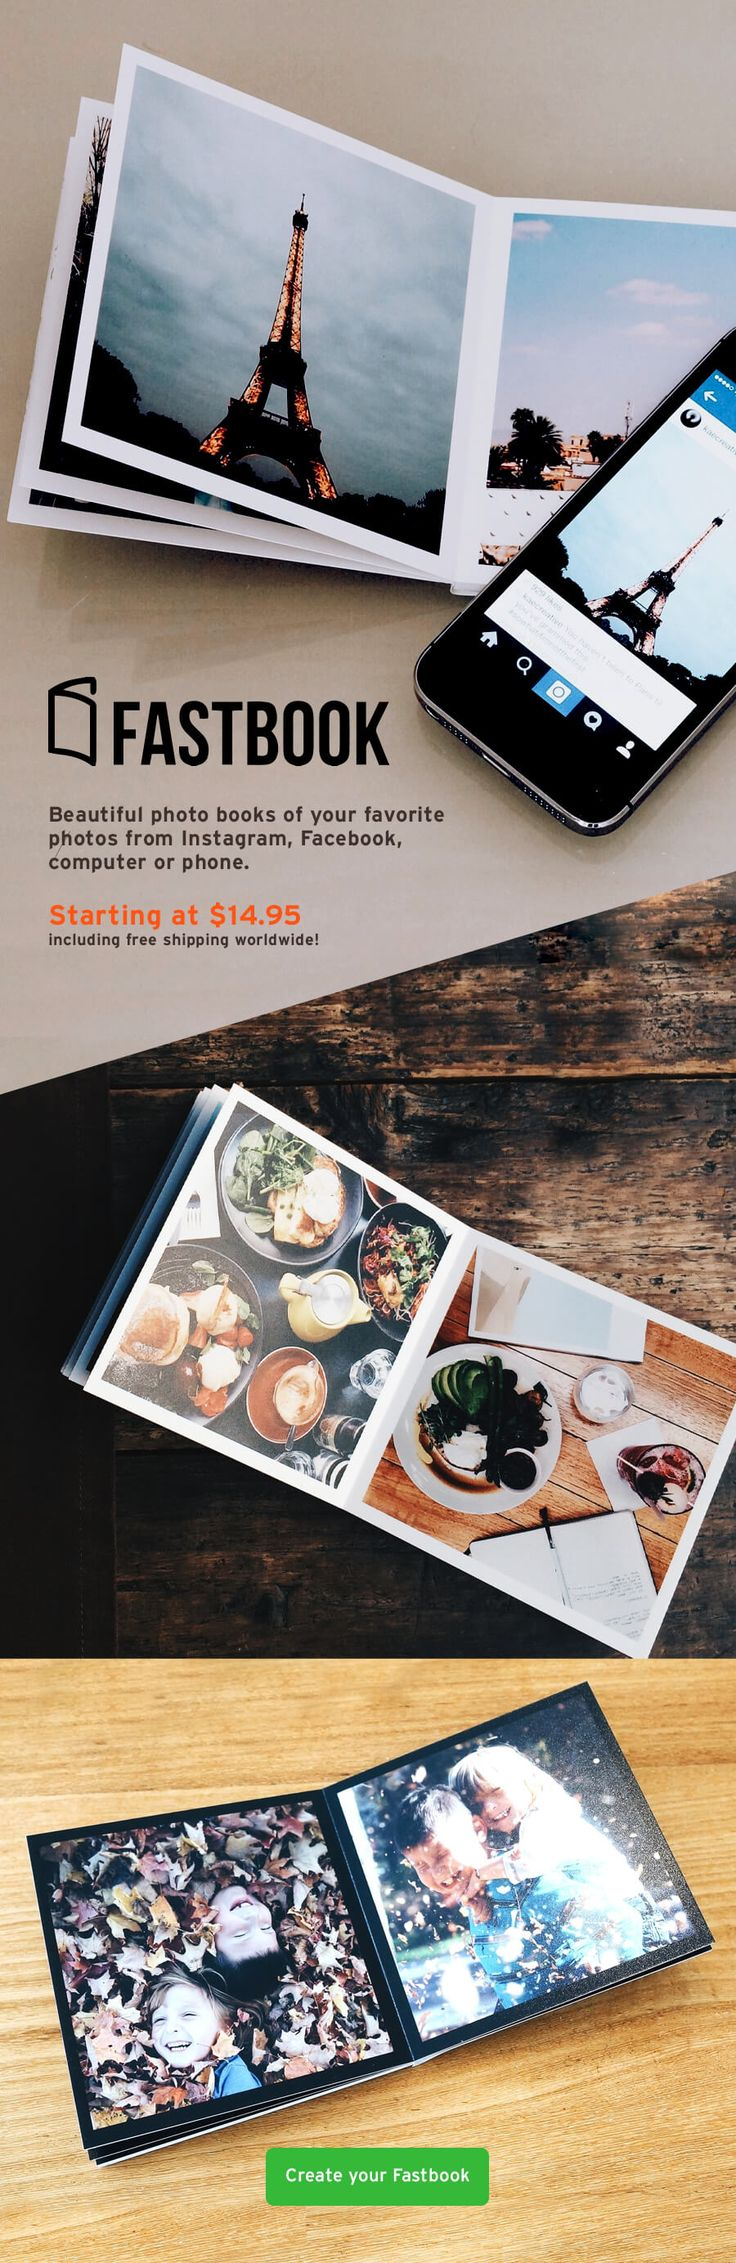 """There are many great ways to use these 4""""x4"""" photo books."""